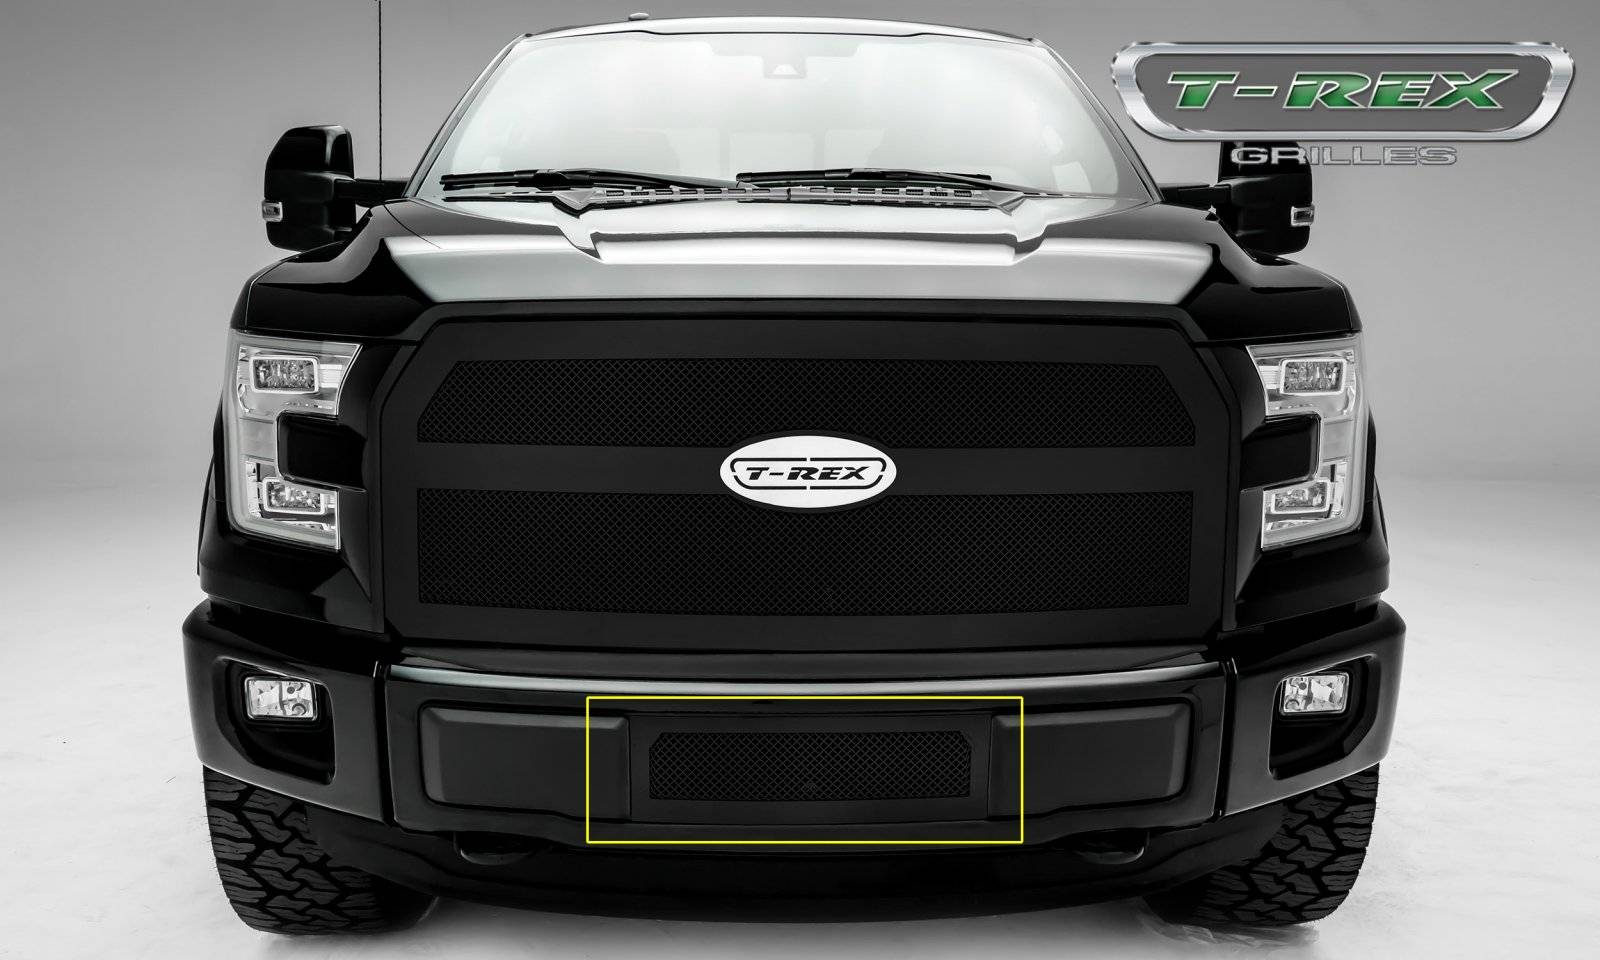 T-REX Ford F-150 - Upper Class Series - Bumper Grille with Black Powdercoat Finish - Pt # 52573